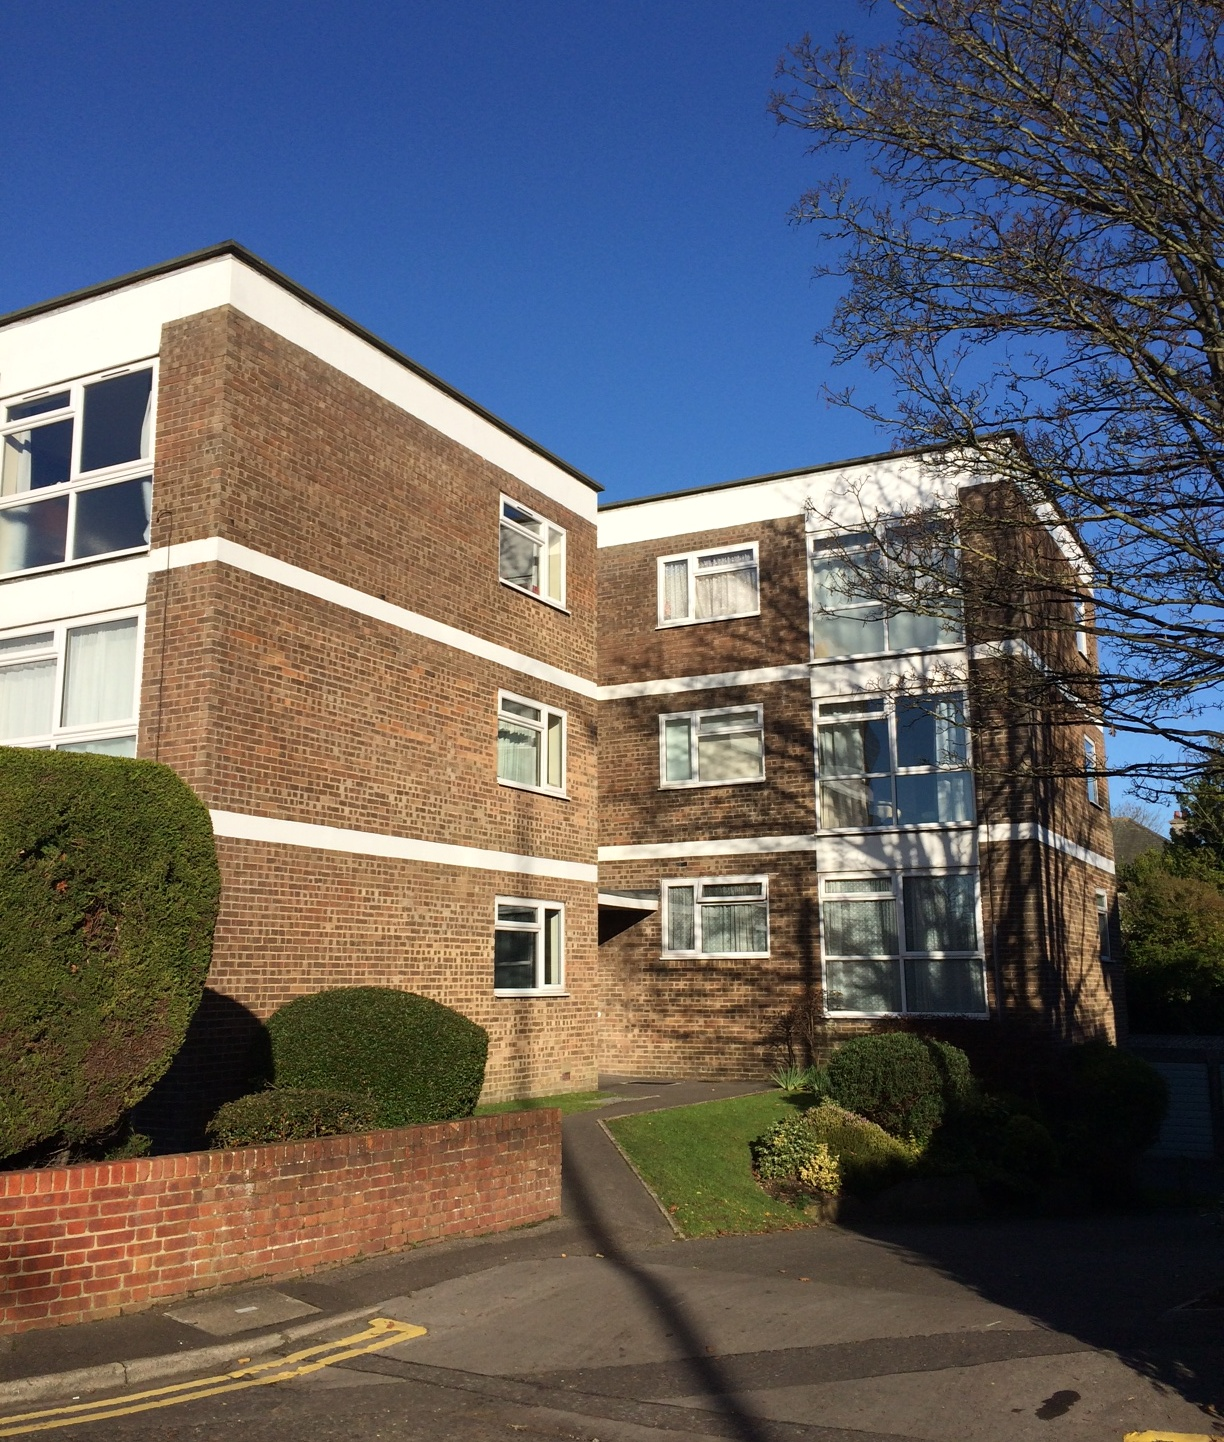 2 Bed Flat Bournemouth Go Let One Bedroom Flat Based In Bournemouth Town Centre